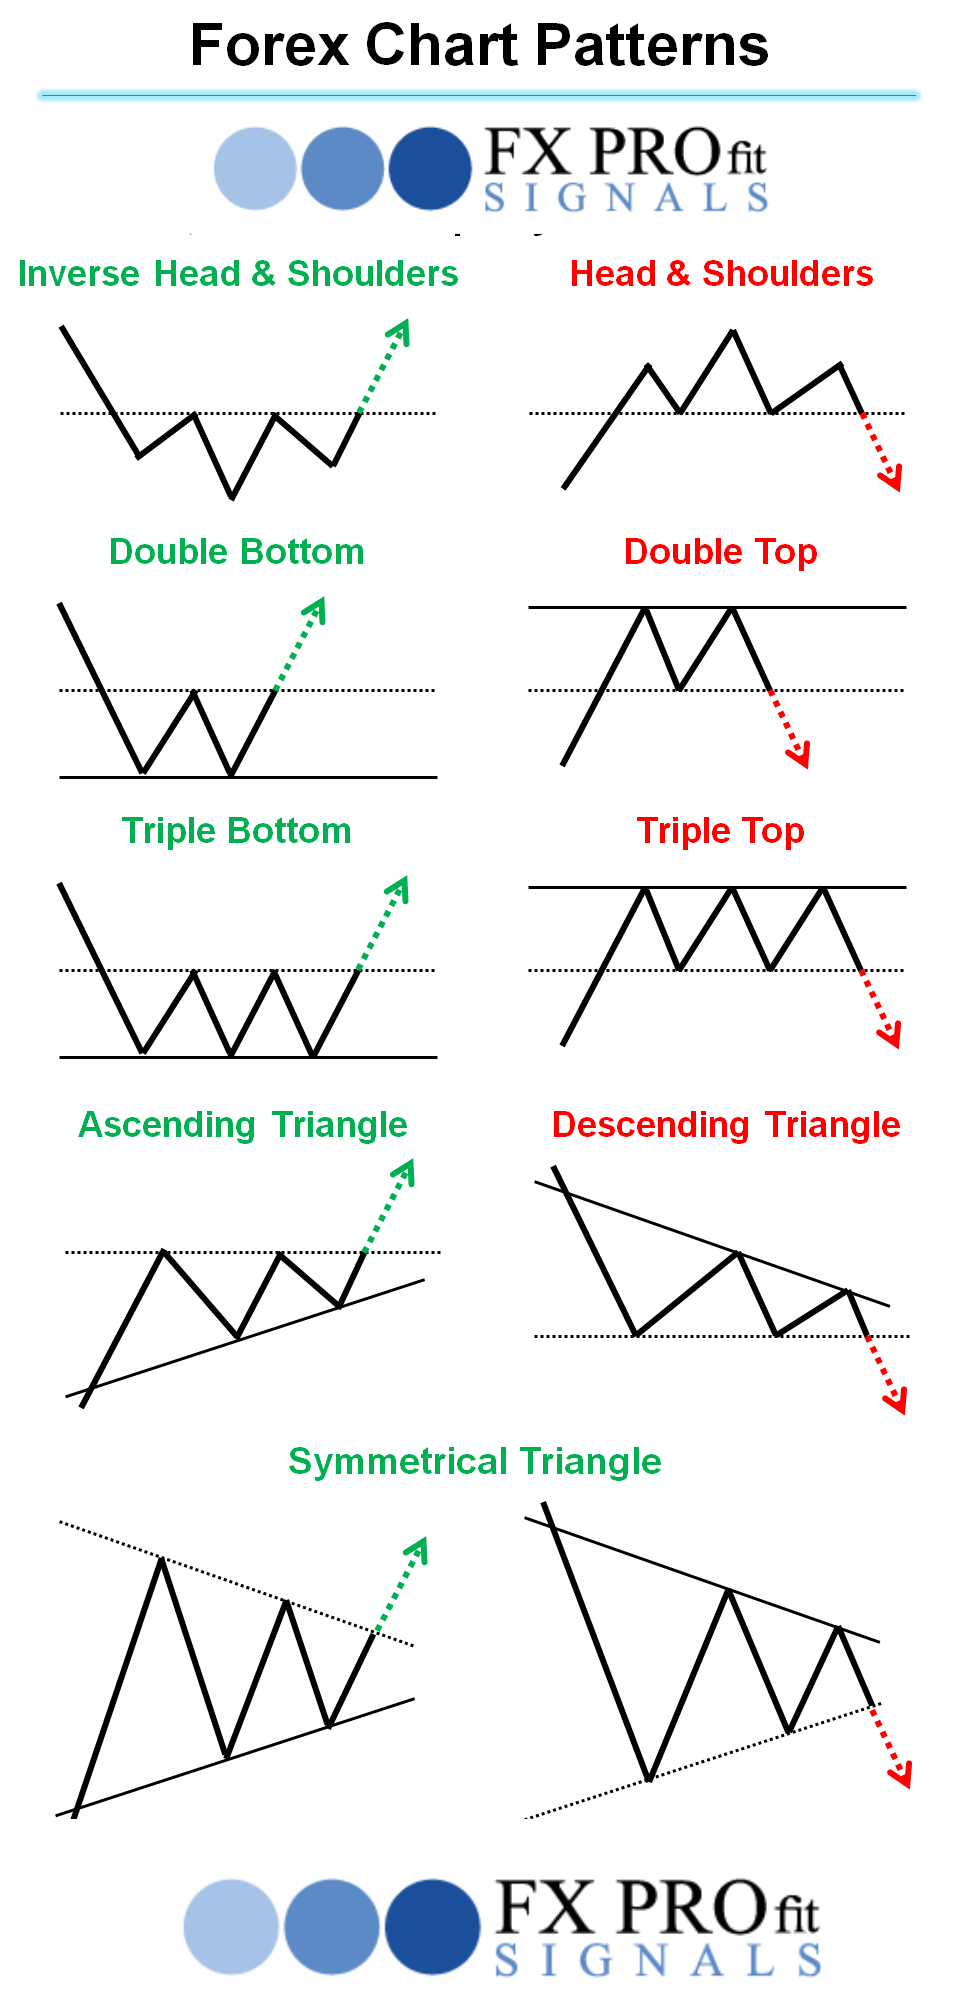 Forex Chart Patterns In 2020 Trading Charts Stock Chart Patterns Forex Trading